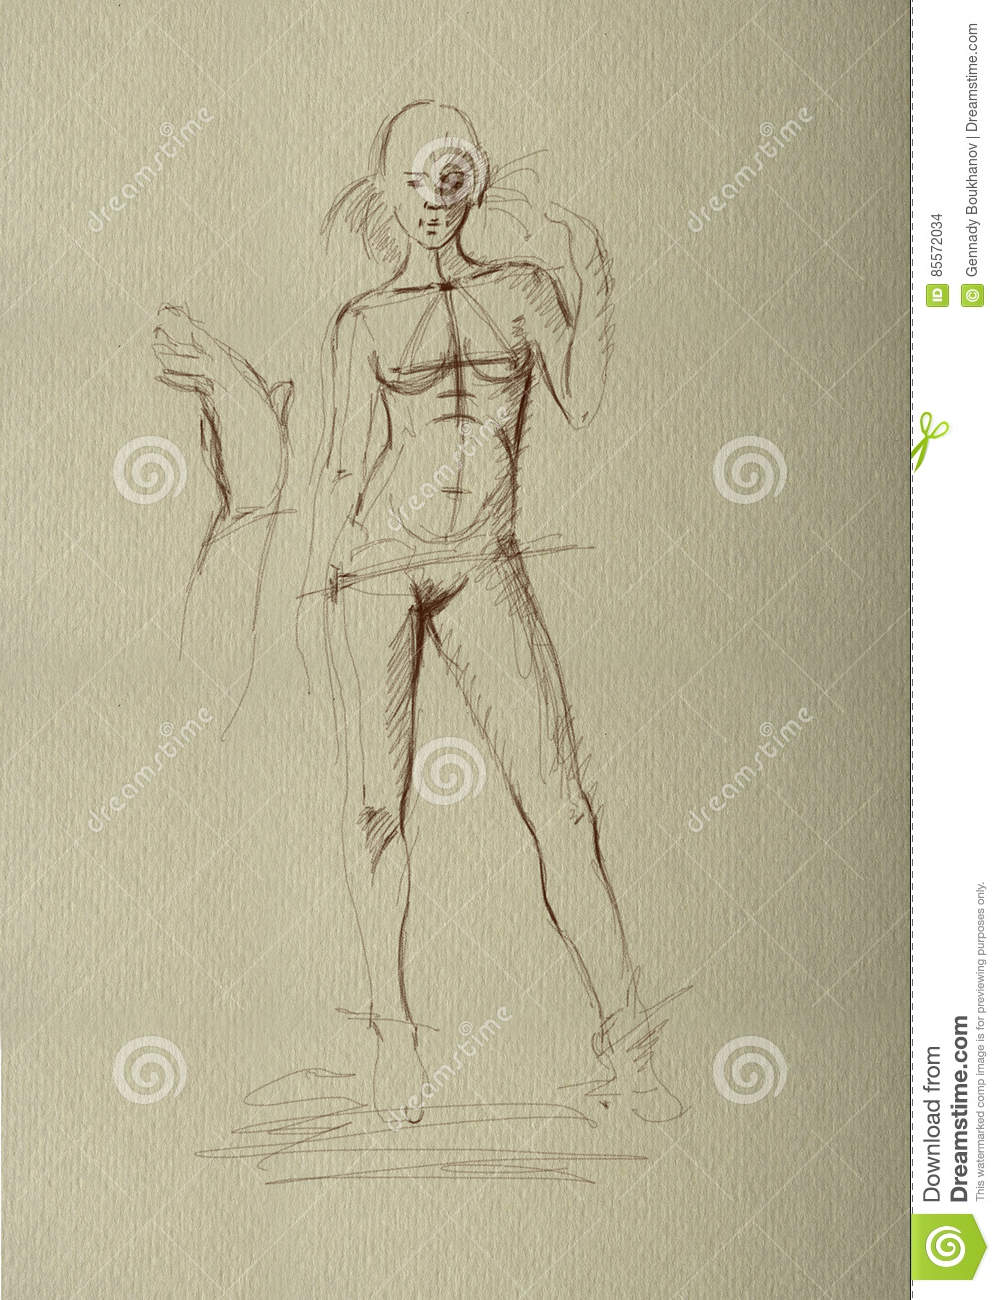 Pencil drawing a nude girl